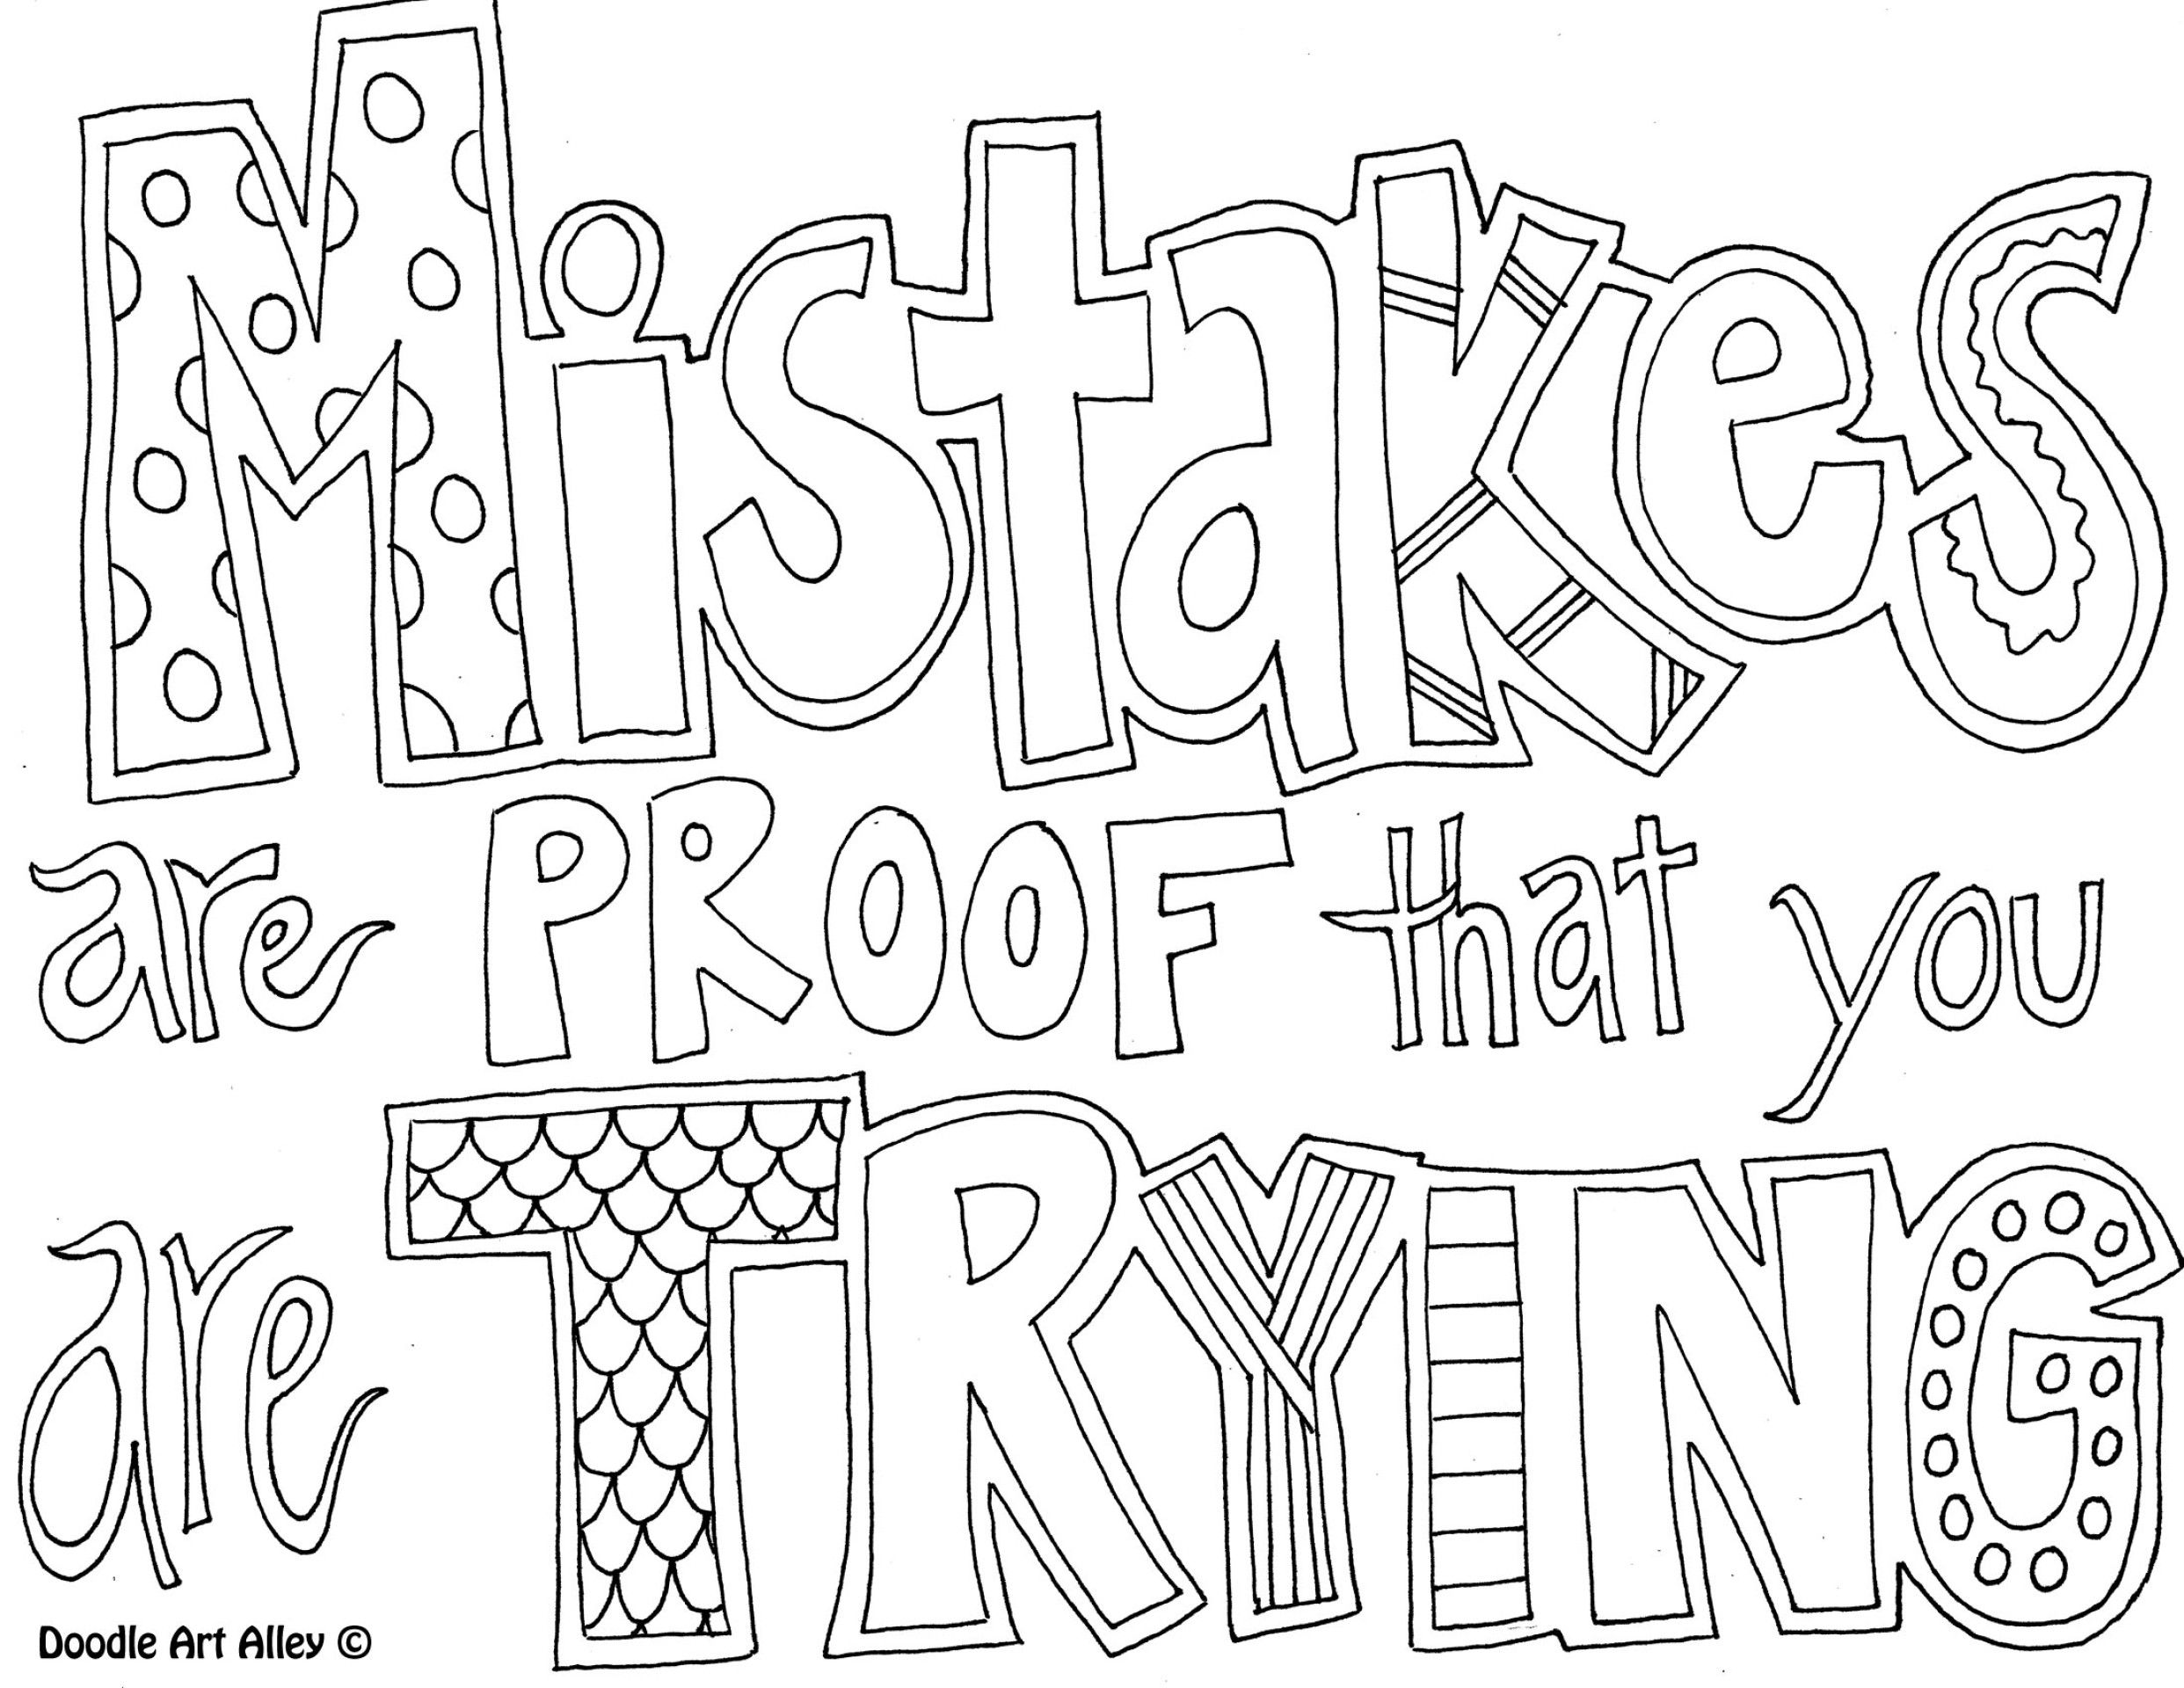 Coloring Page Mistakes Are Proof That You Are Trying Quote Coloring Pages Coloring Pages Classroom